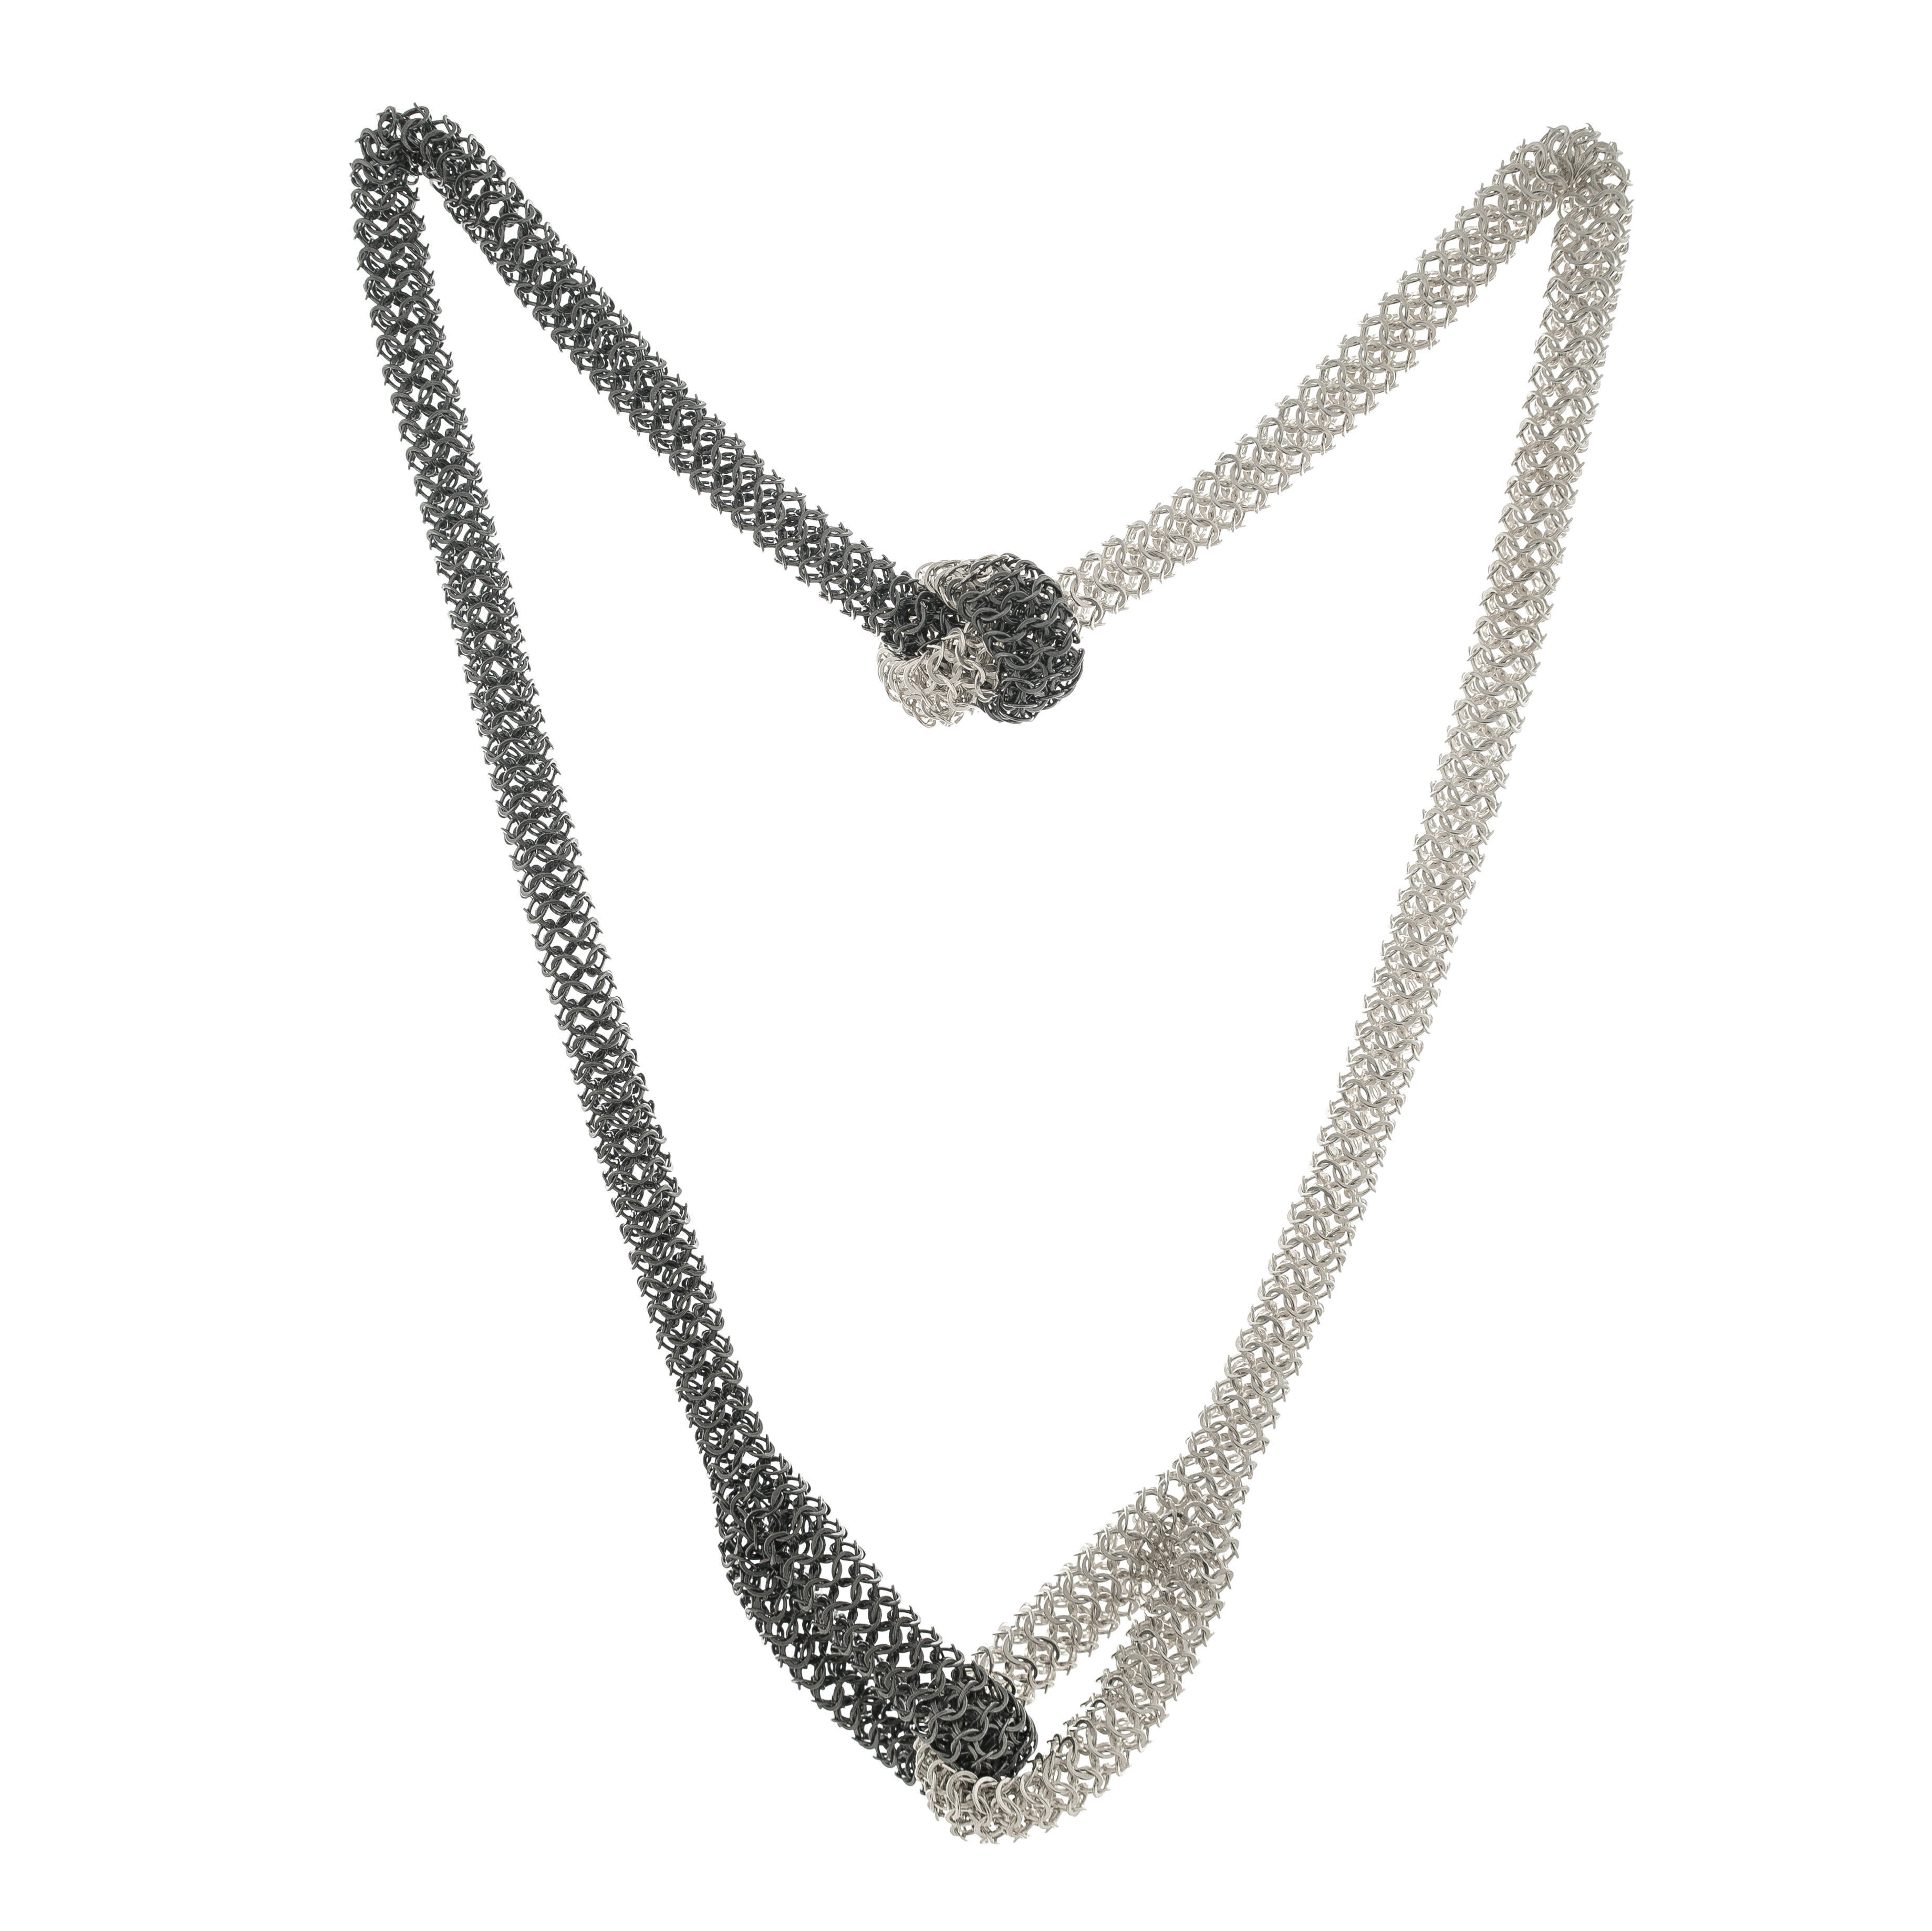 Elliot necklace, silver and oxidised silver